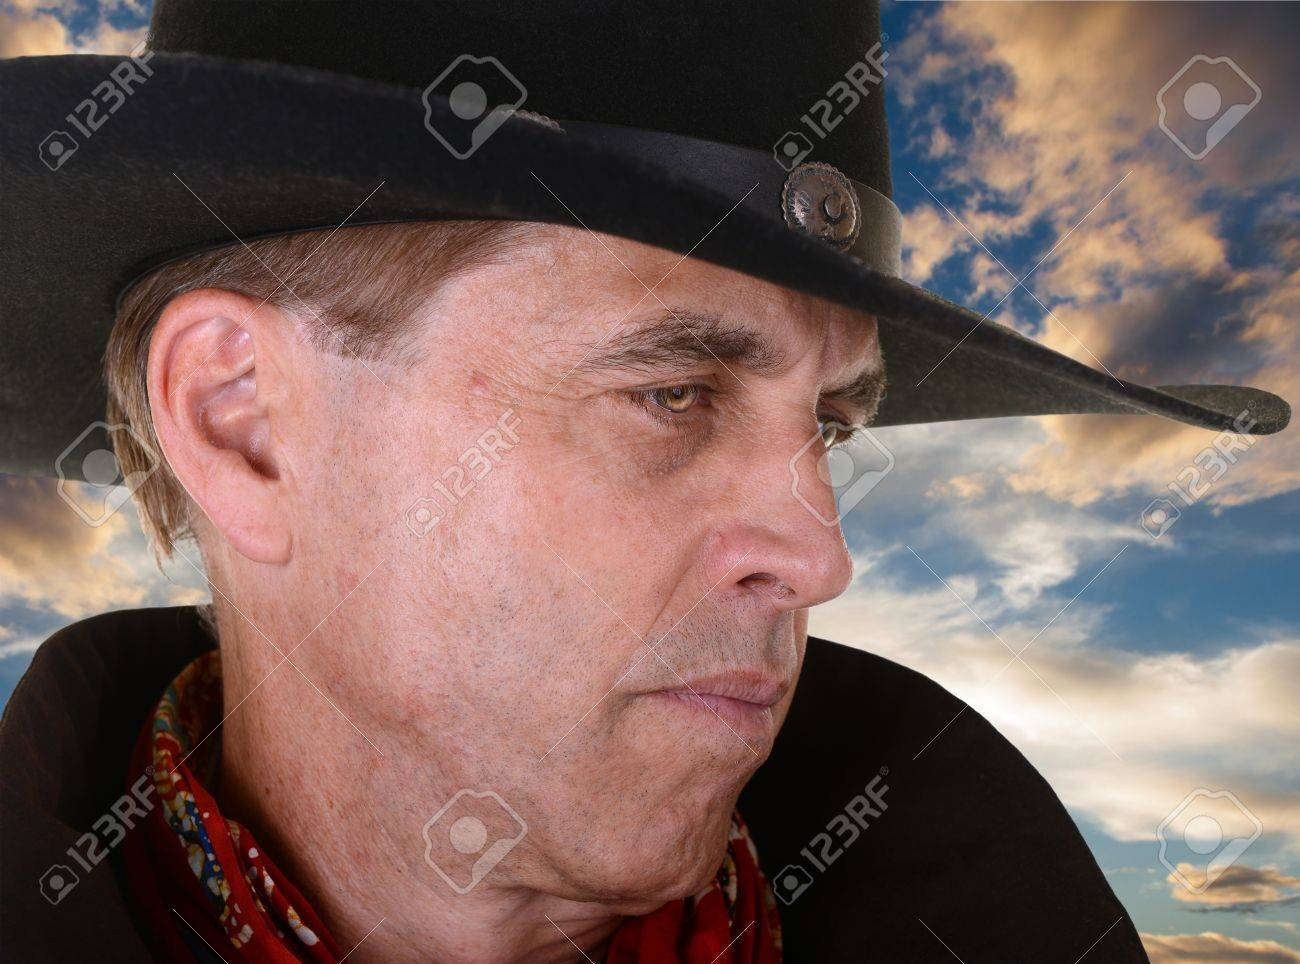 Profile Of Handsome Serious Man Wearing A Black Cowboy Hat And Red Bandana Against Beautiful Sunset